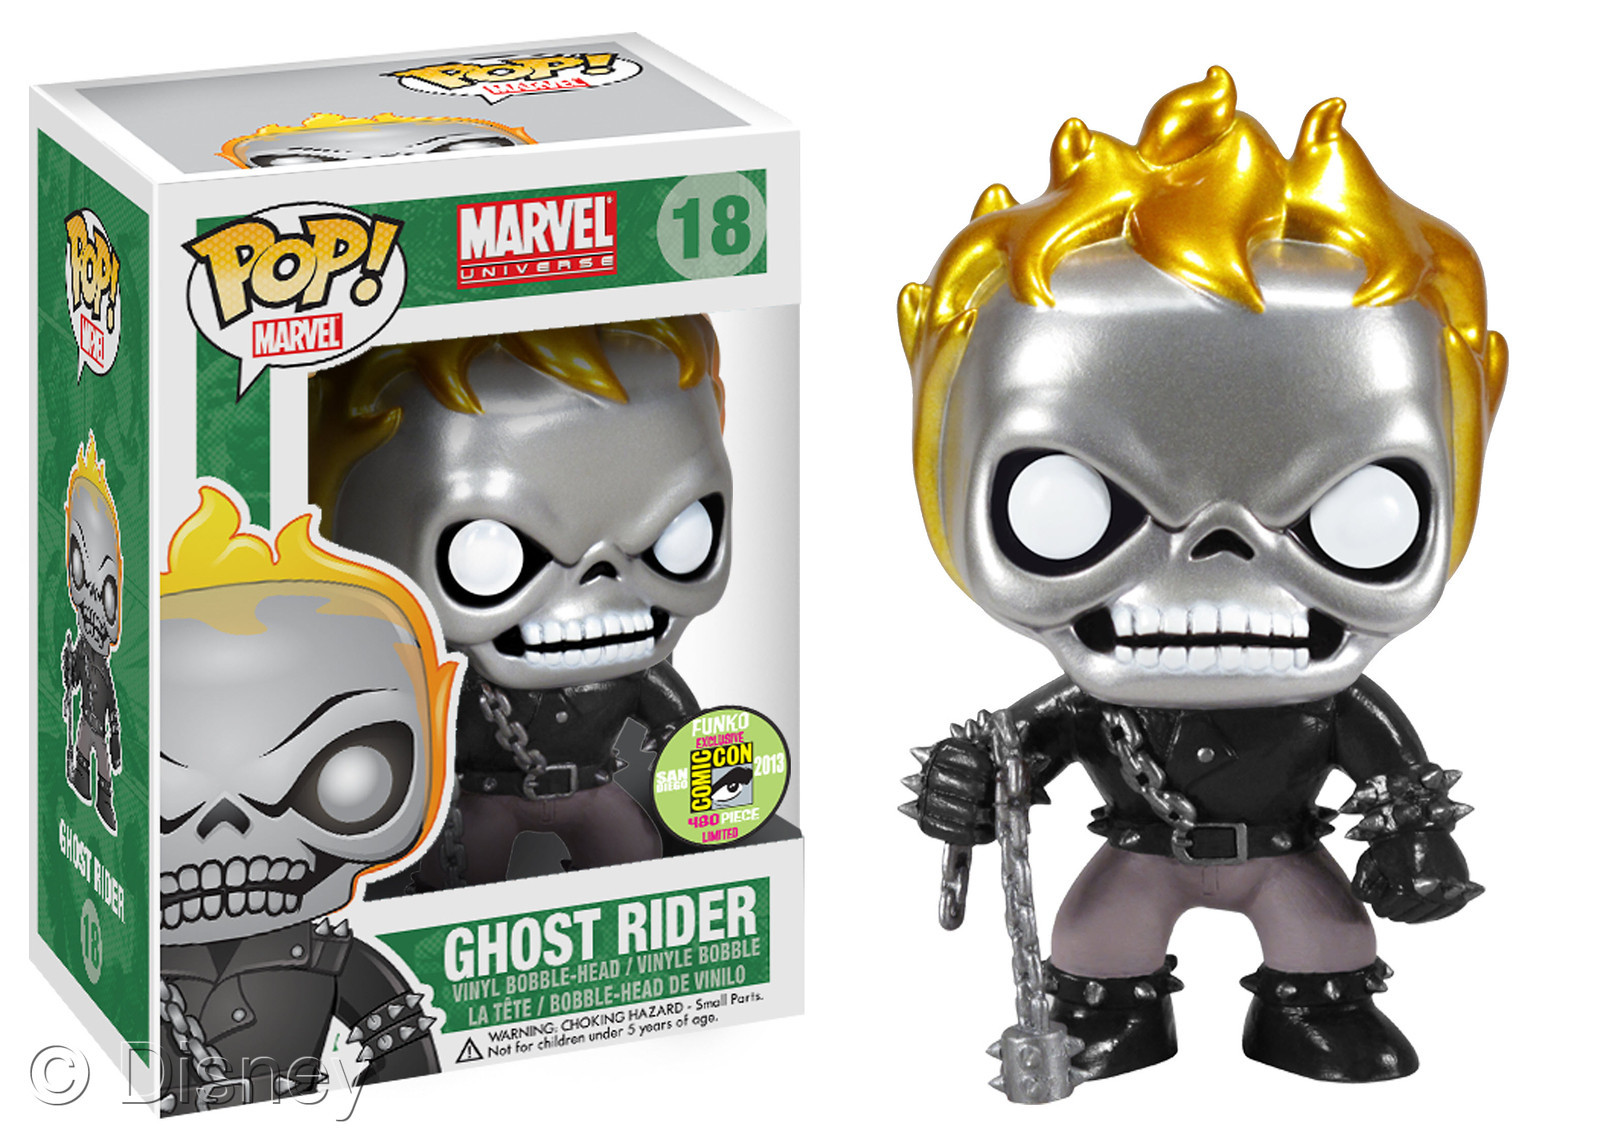 Marvel Talks About Upcoming SDCC Exclusives - The Toyark ...